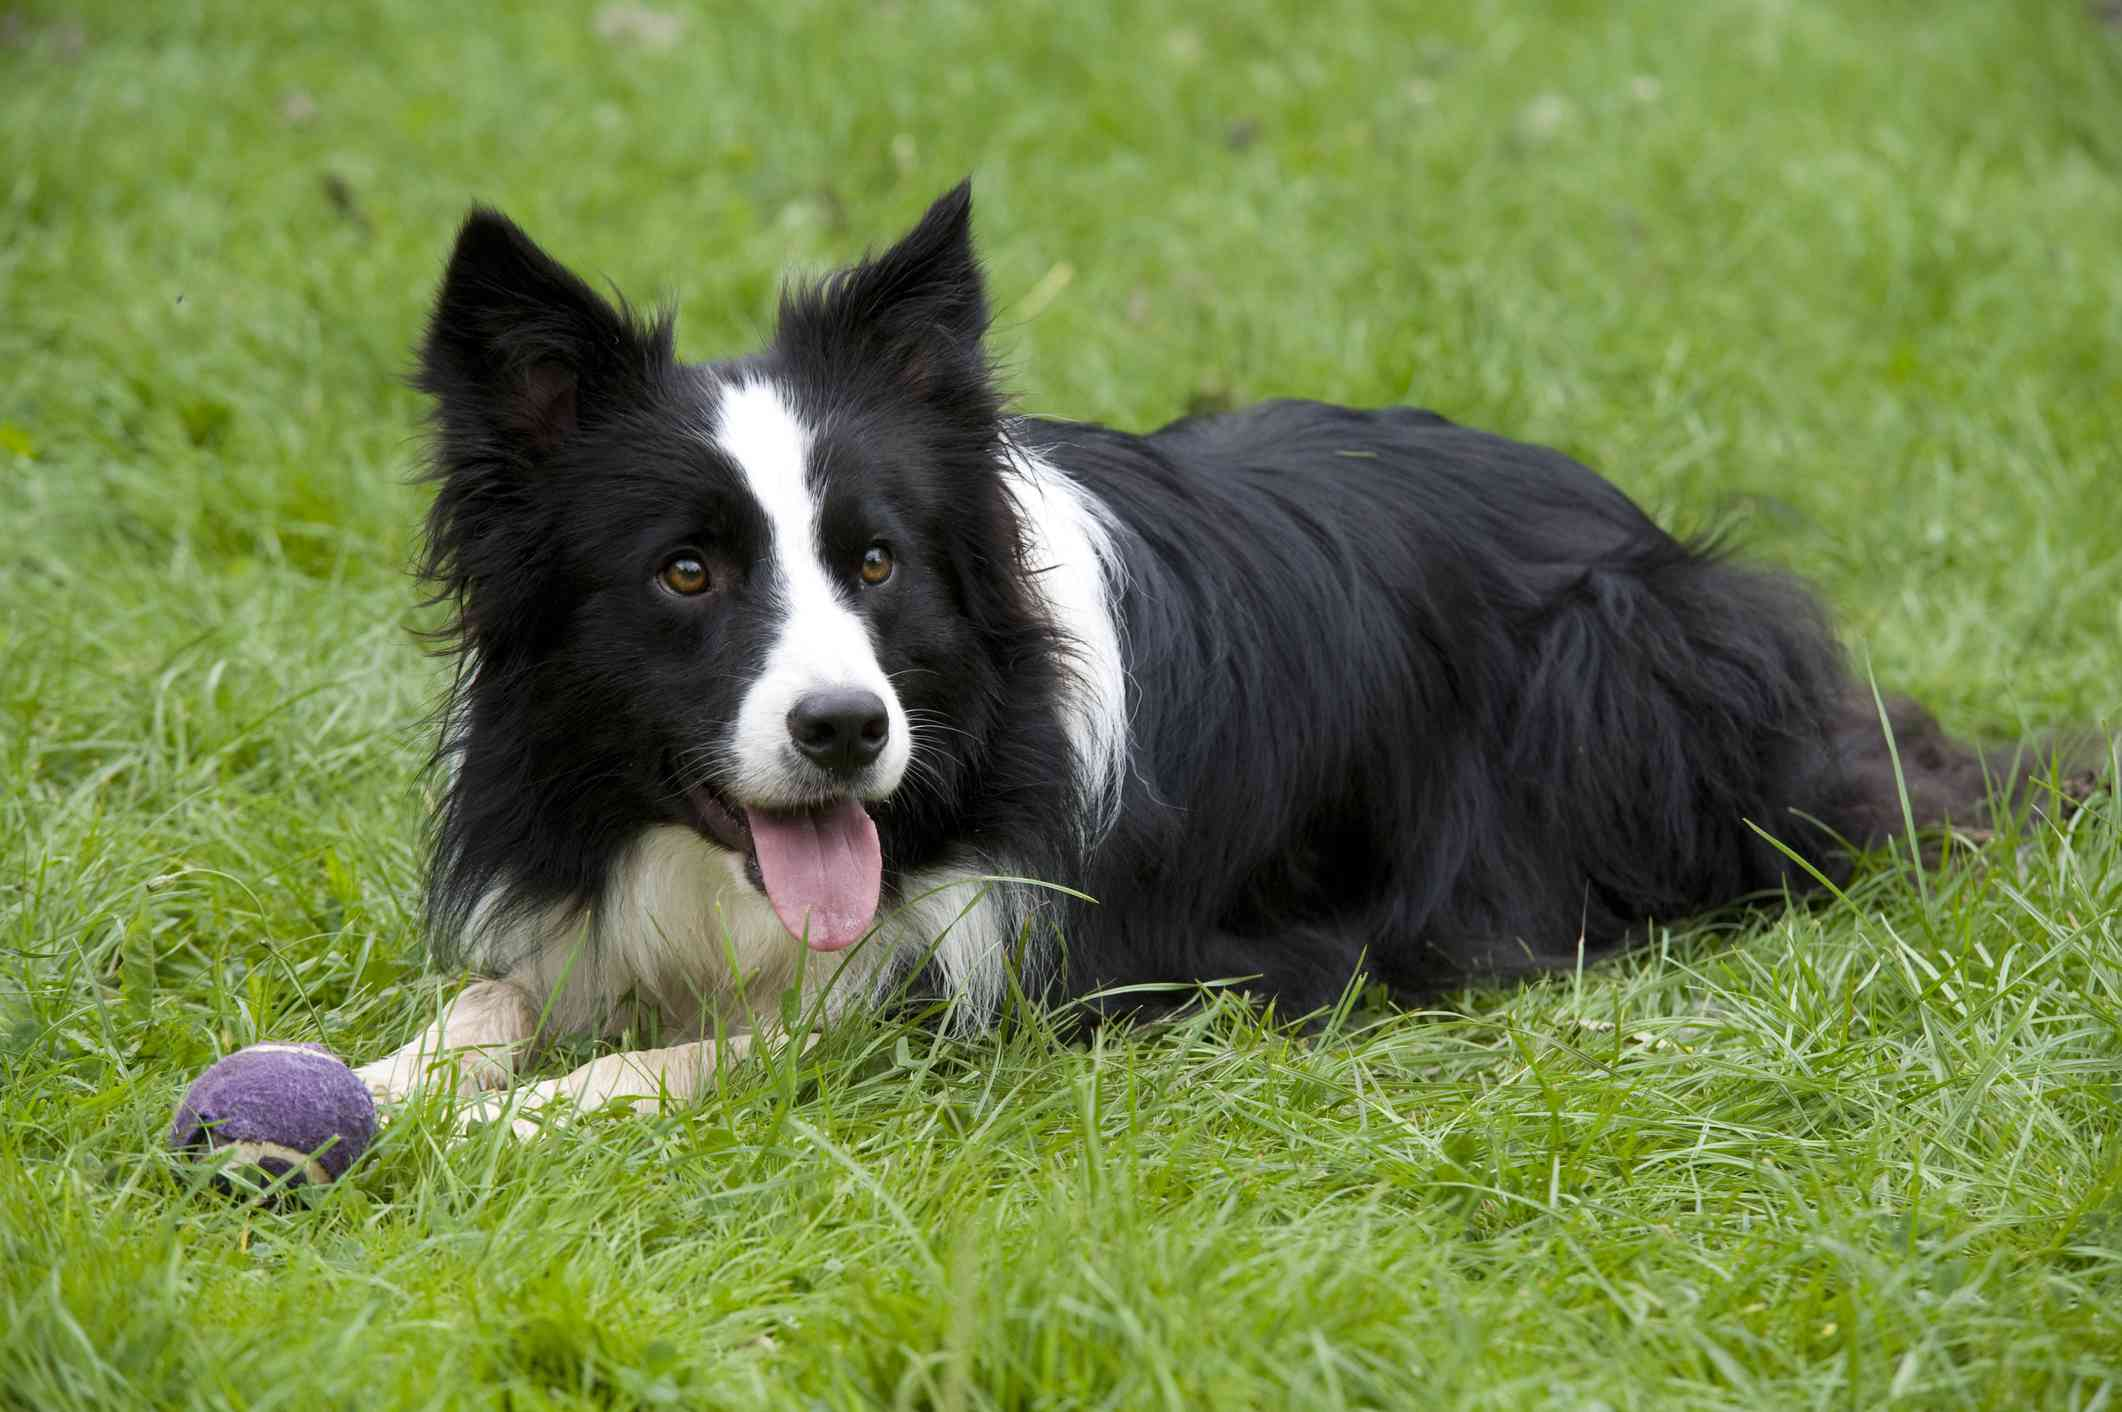 black and white border collie lying in green grass with purple tennis ball